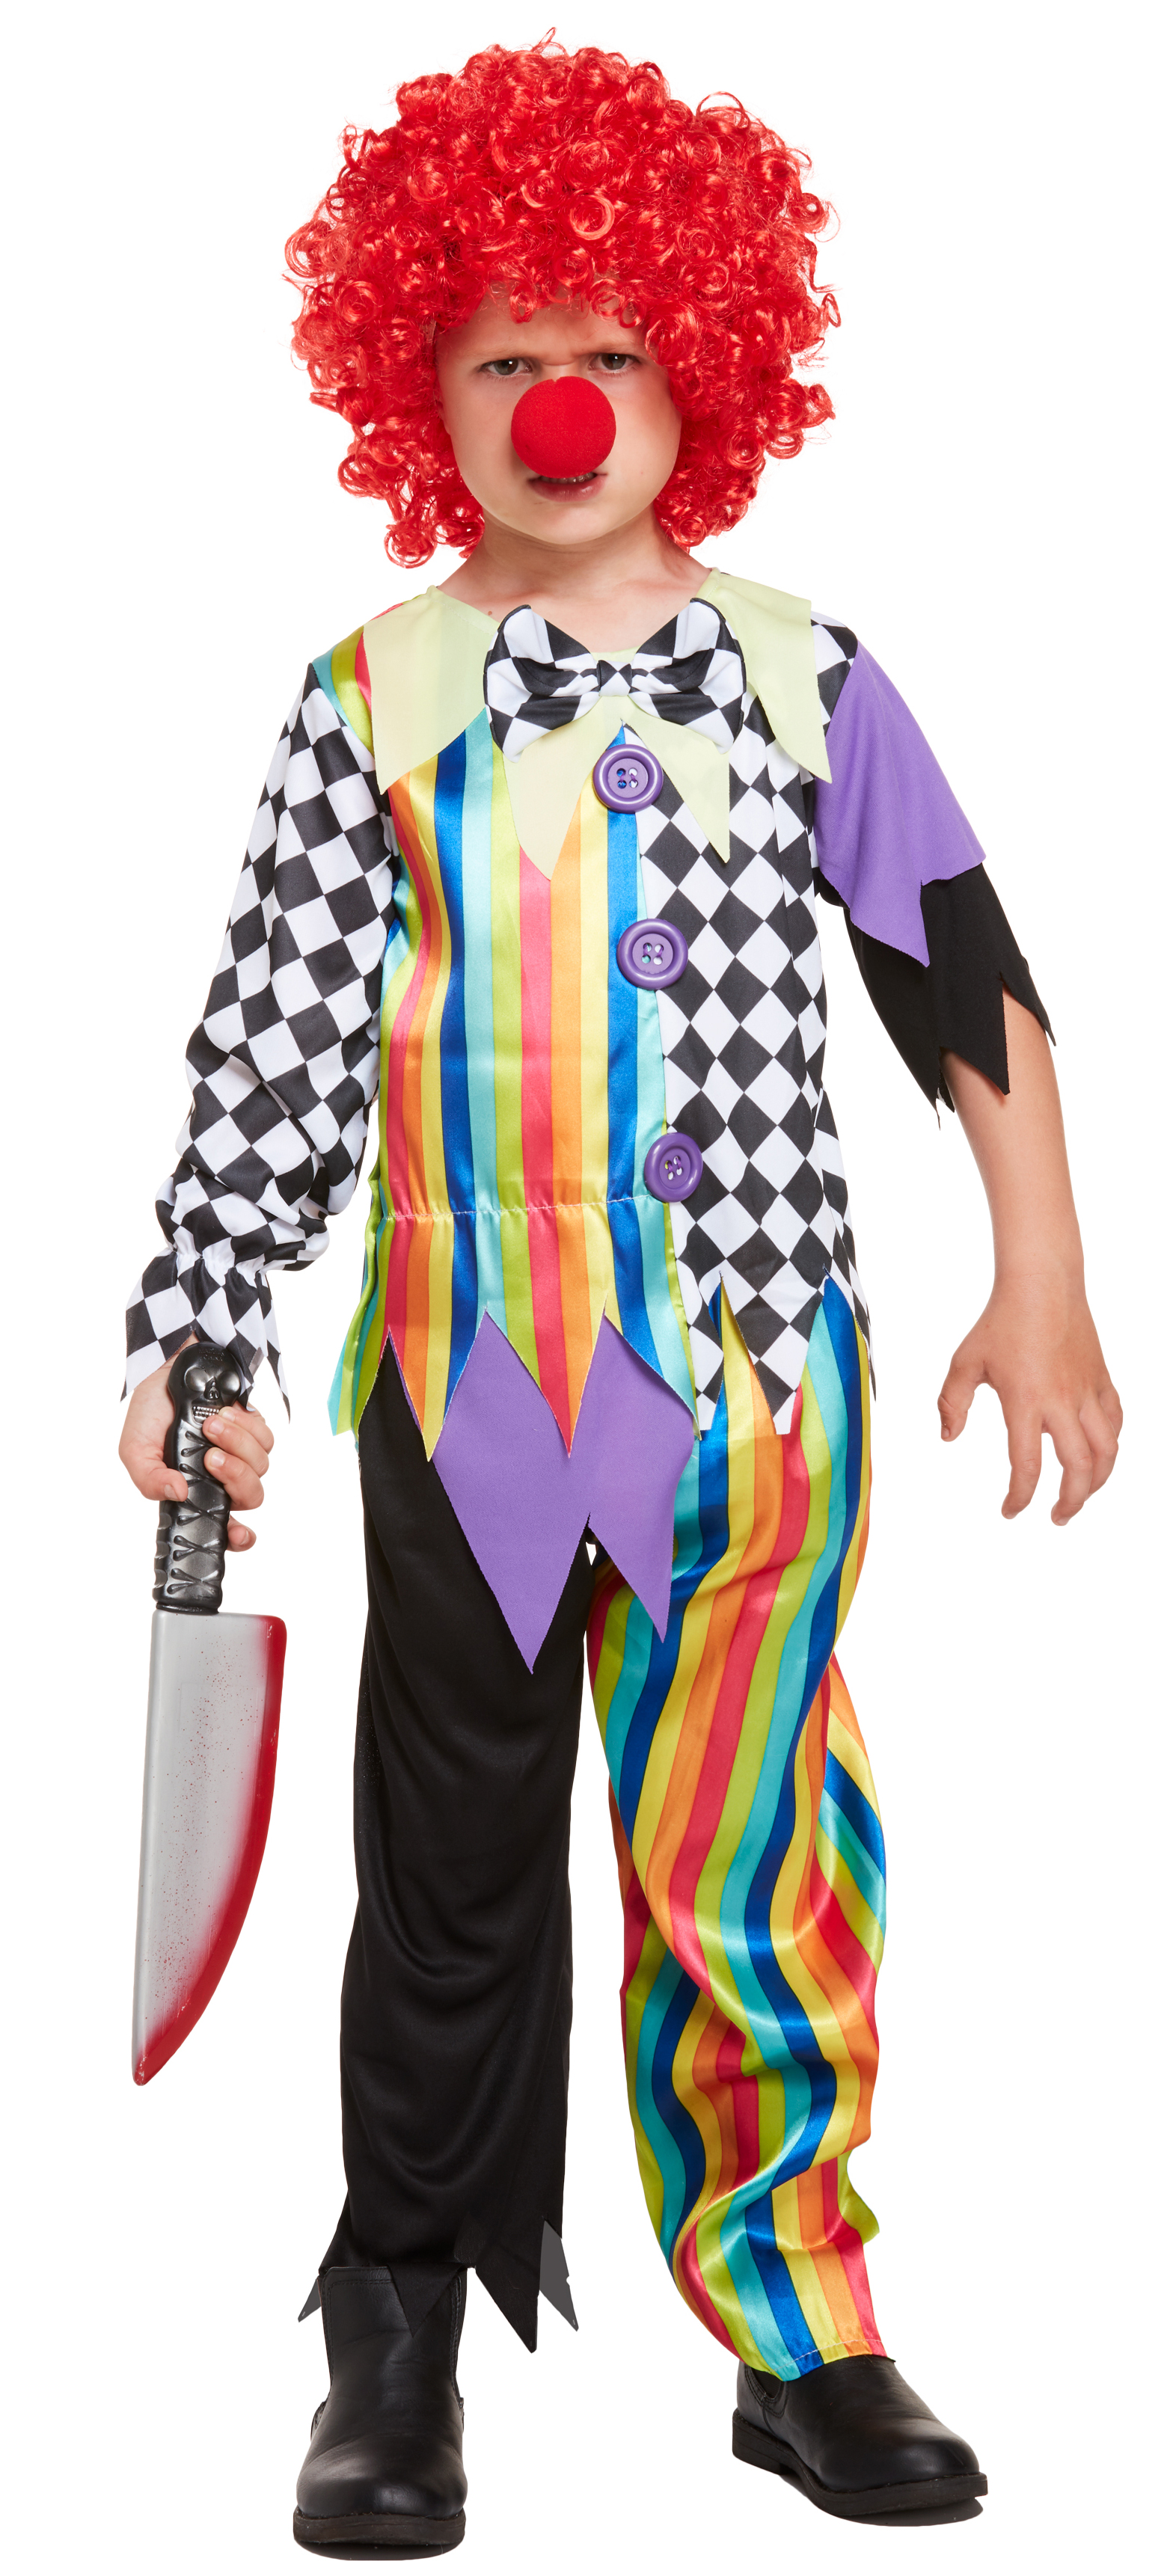 Killer Clown Halloween Costumes For Girls.Details About Killer Clown Kids Halloween Fancy Dress Circus Boys Girls Childrens Costume